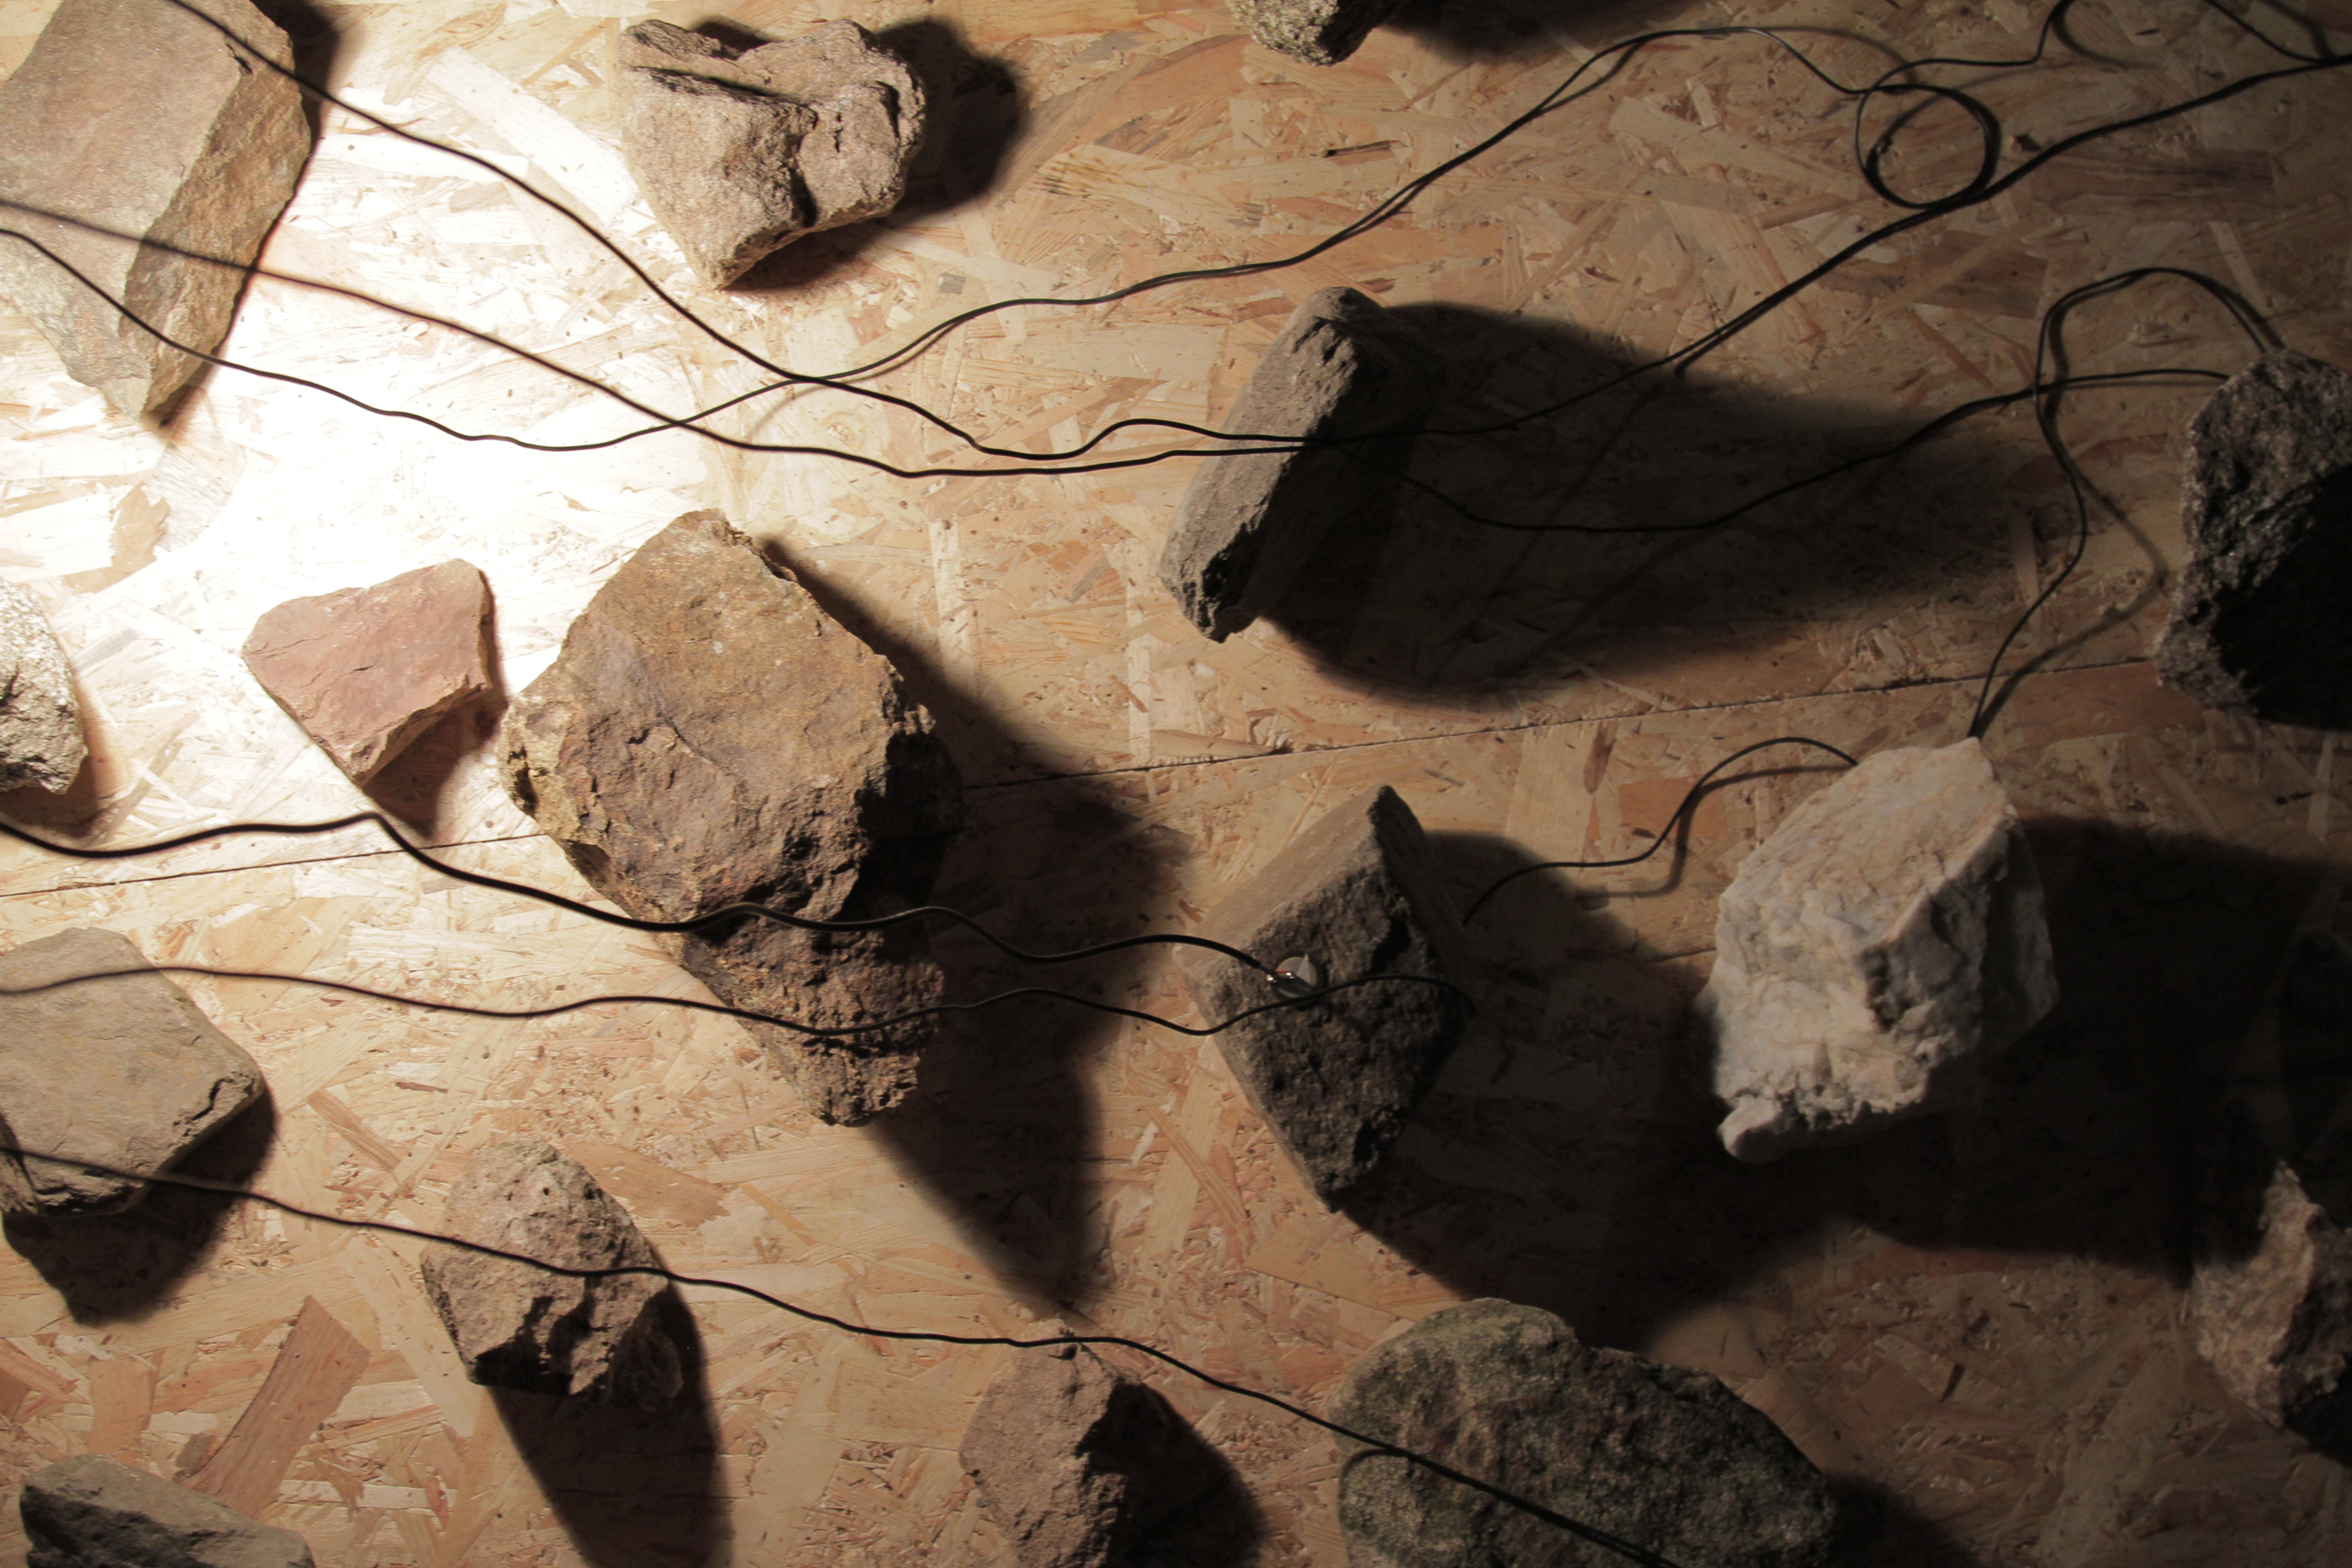 sound installation with rocks by Spanish artist Guillermo Moreno Mirallas